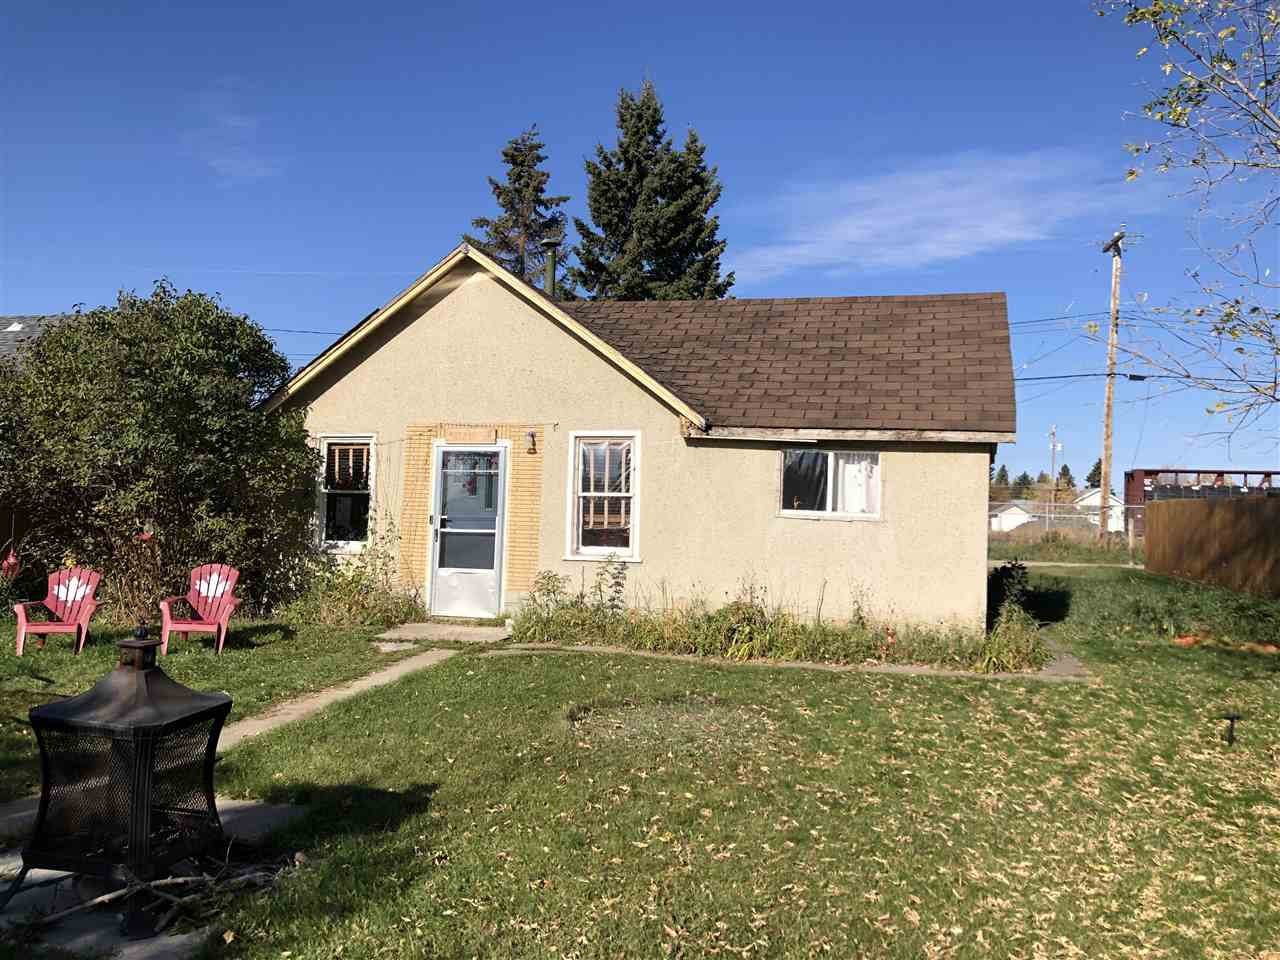 Great little starter home or rental investment opportunity. Quiet area downtown walking distance to all amenities.  672 sqft including the addition. 2 bedroom, 1 bath. Newer paint. Good sized porch. Great yard, partially fenced, space to add a garage. Handyman special.